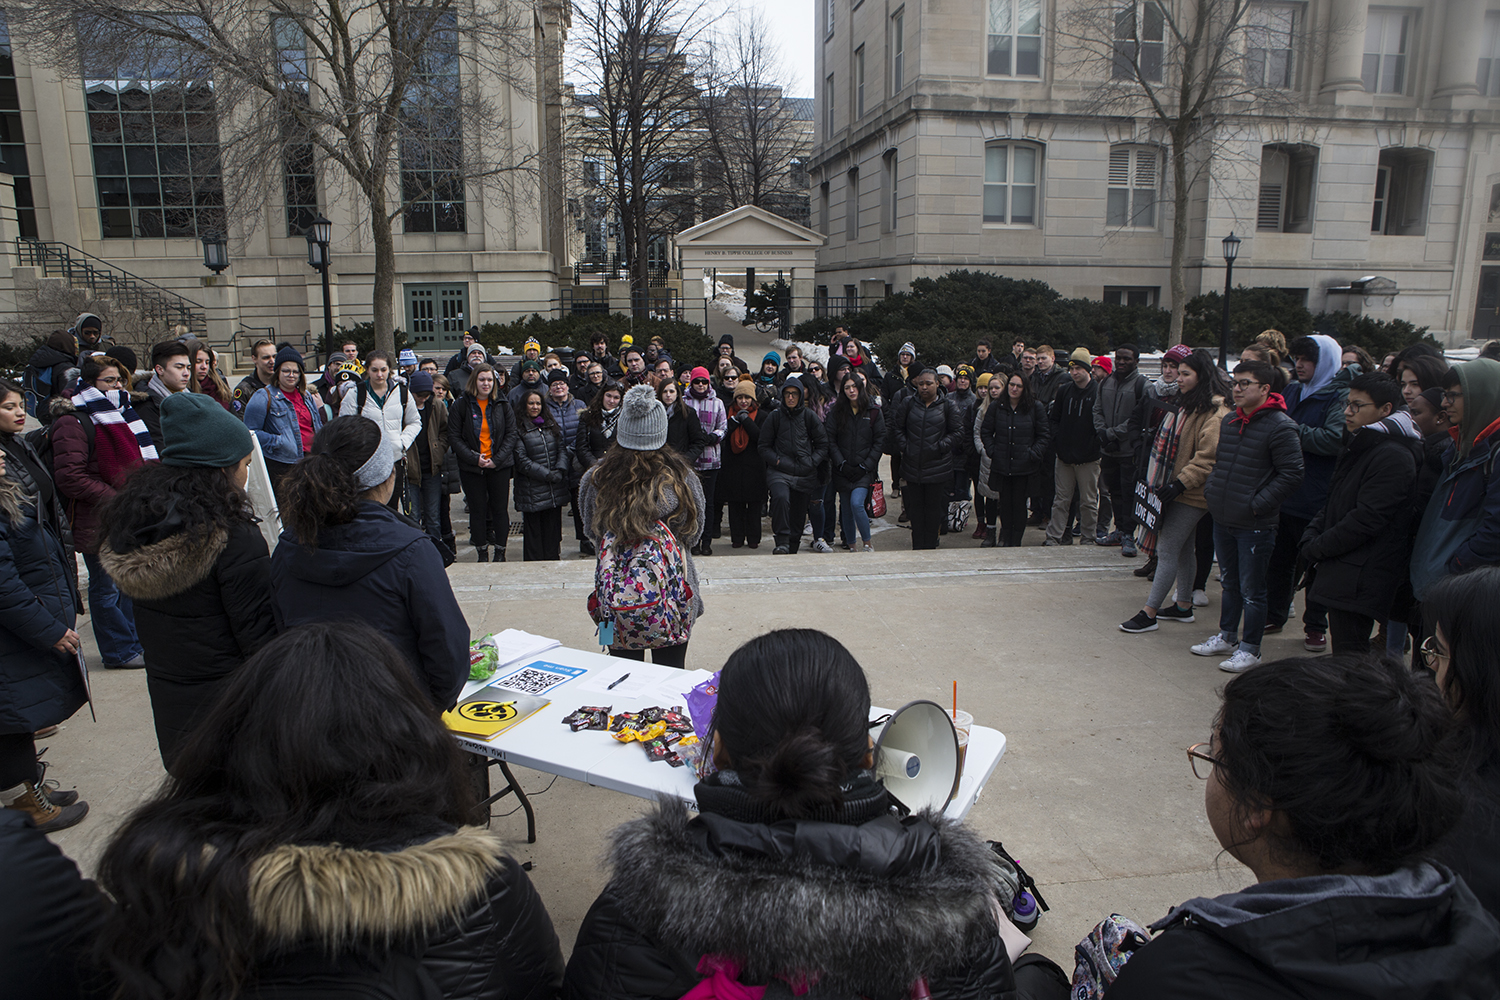 A student speaks during a rally for the #DoesUIowaLoveMe movement in the T. Anne Cleary Walkway on Thursday, February 28, 2019. Students, university faculty, and community members gathered to tell their stories about belonging to marginalized cultural groups. Does UIowa Love Me is a collective of students that aims to give underrepresented students an outlet to share their experiences as people of color at a predominantly white institution.